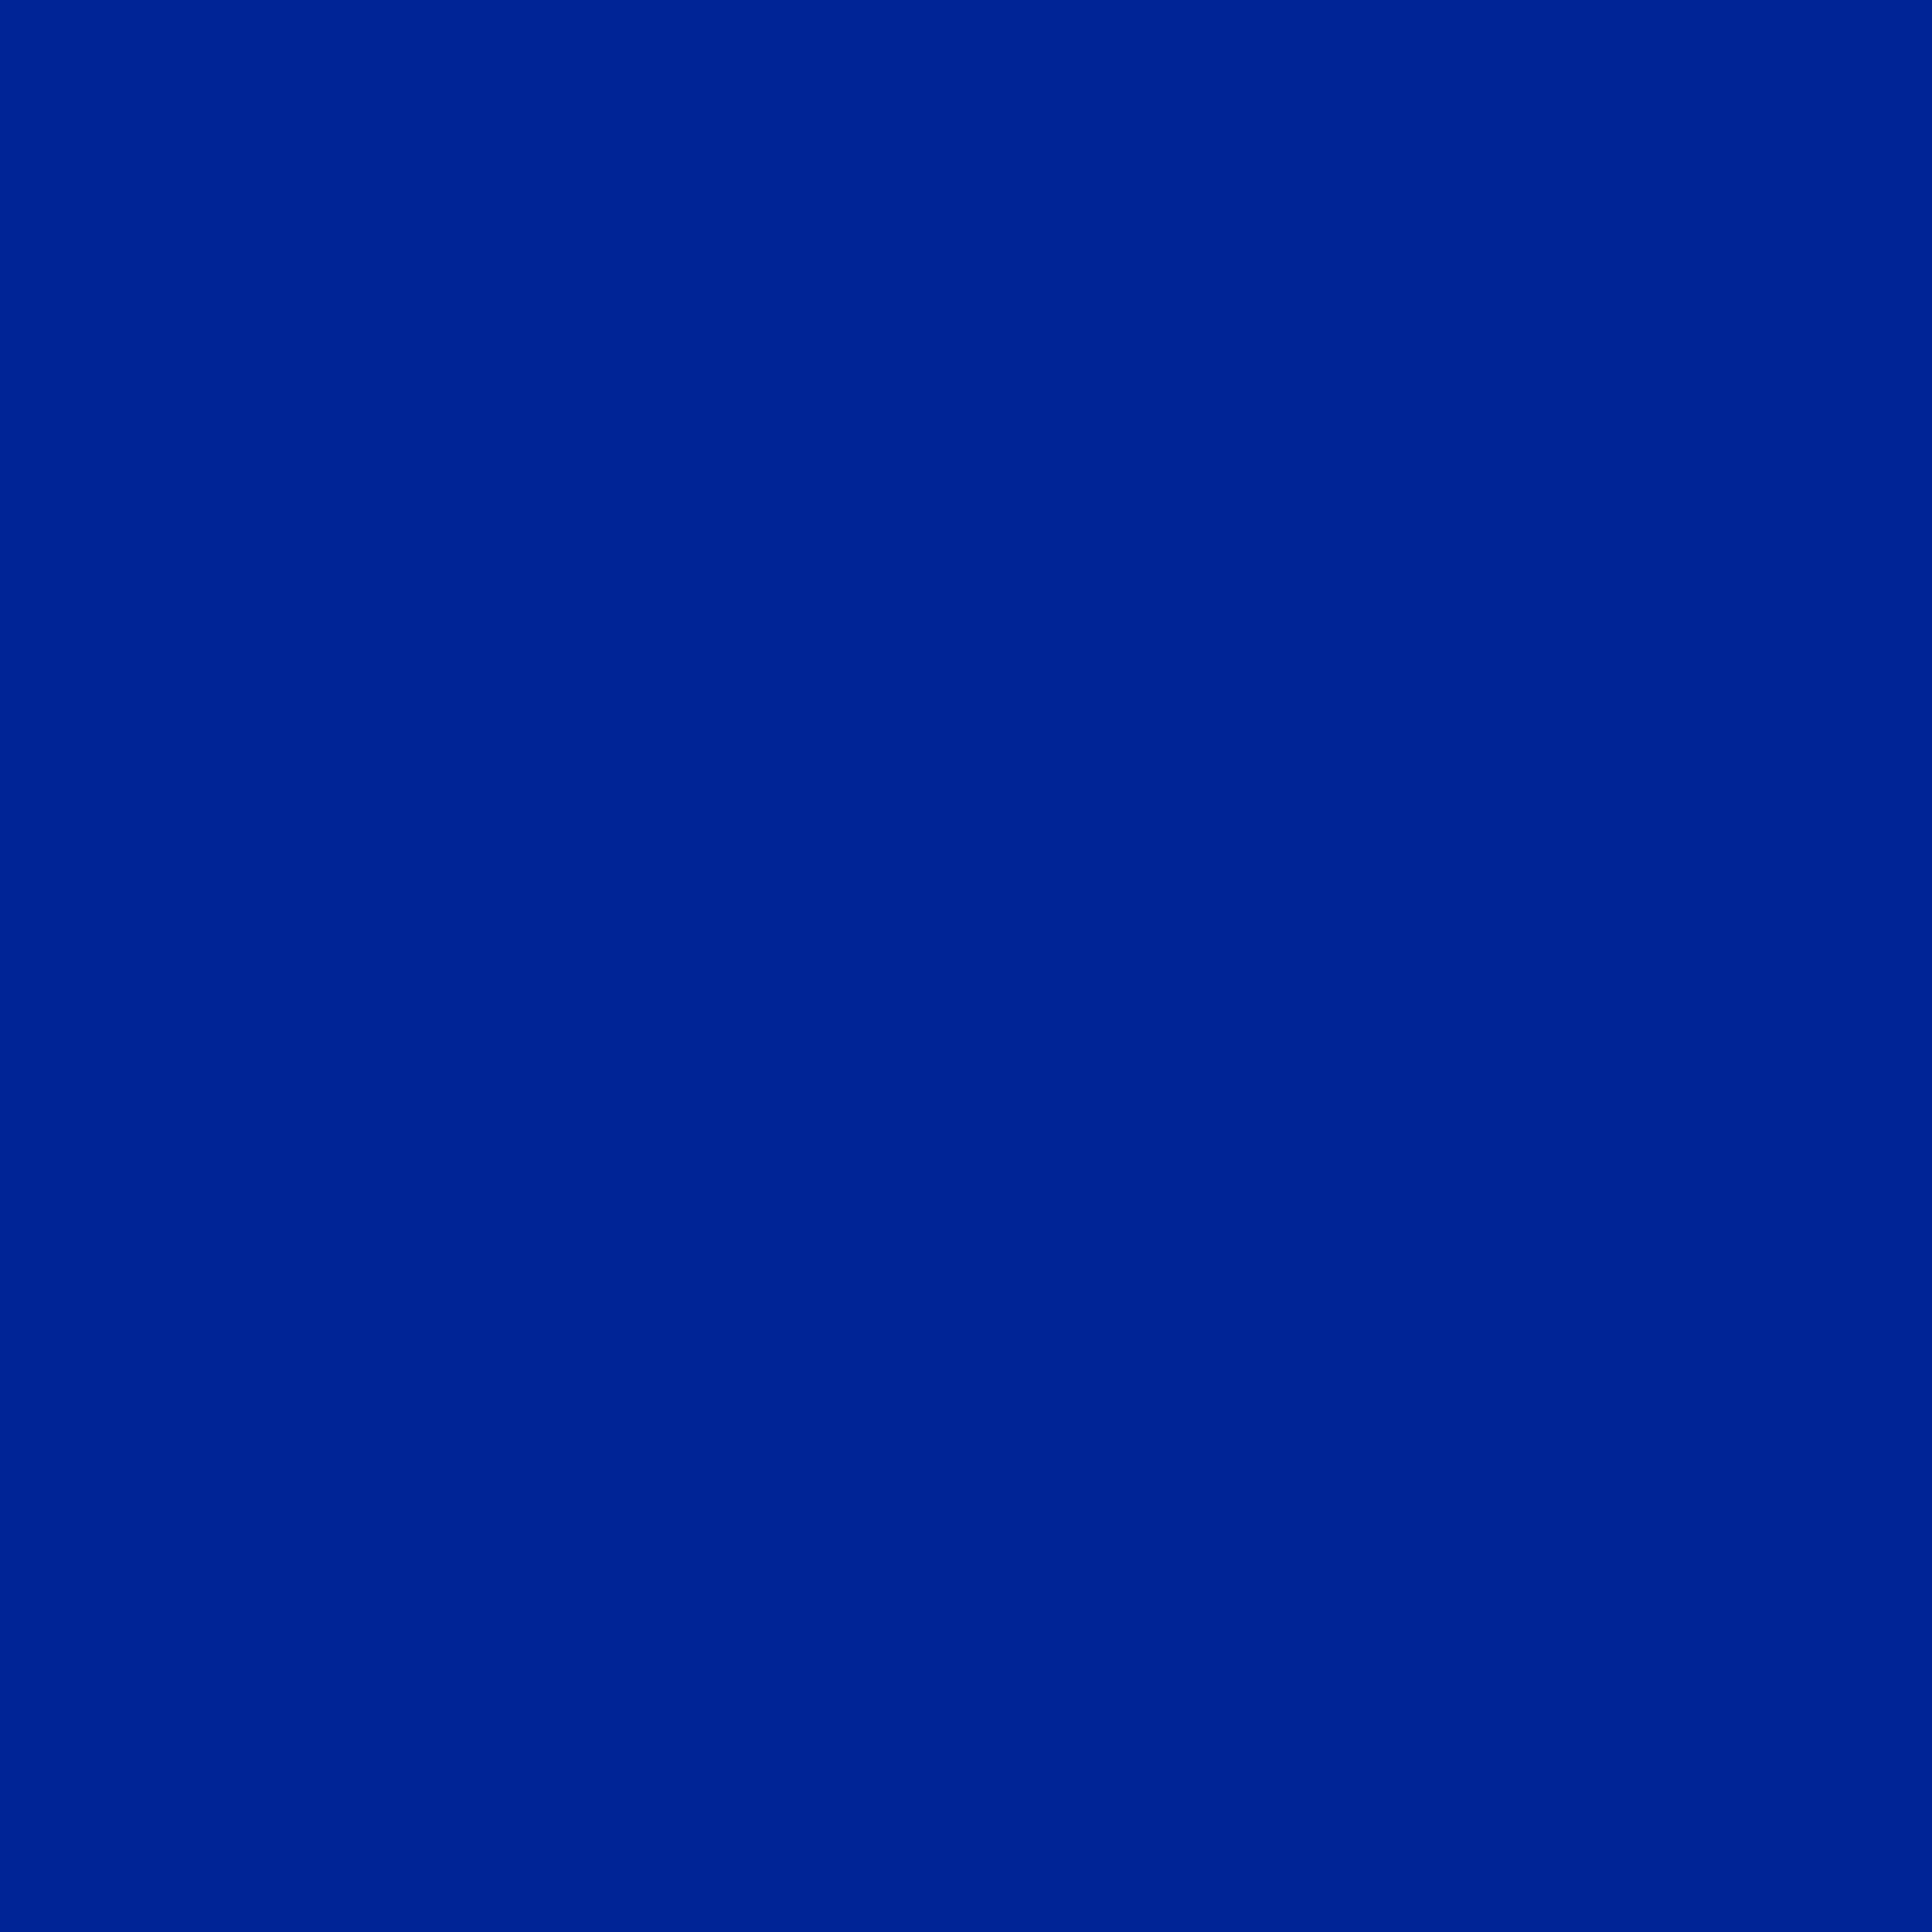 3600x3600 Imperial Blue Solid Color Background